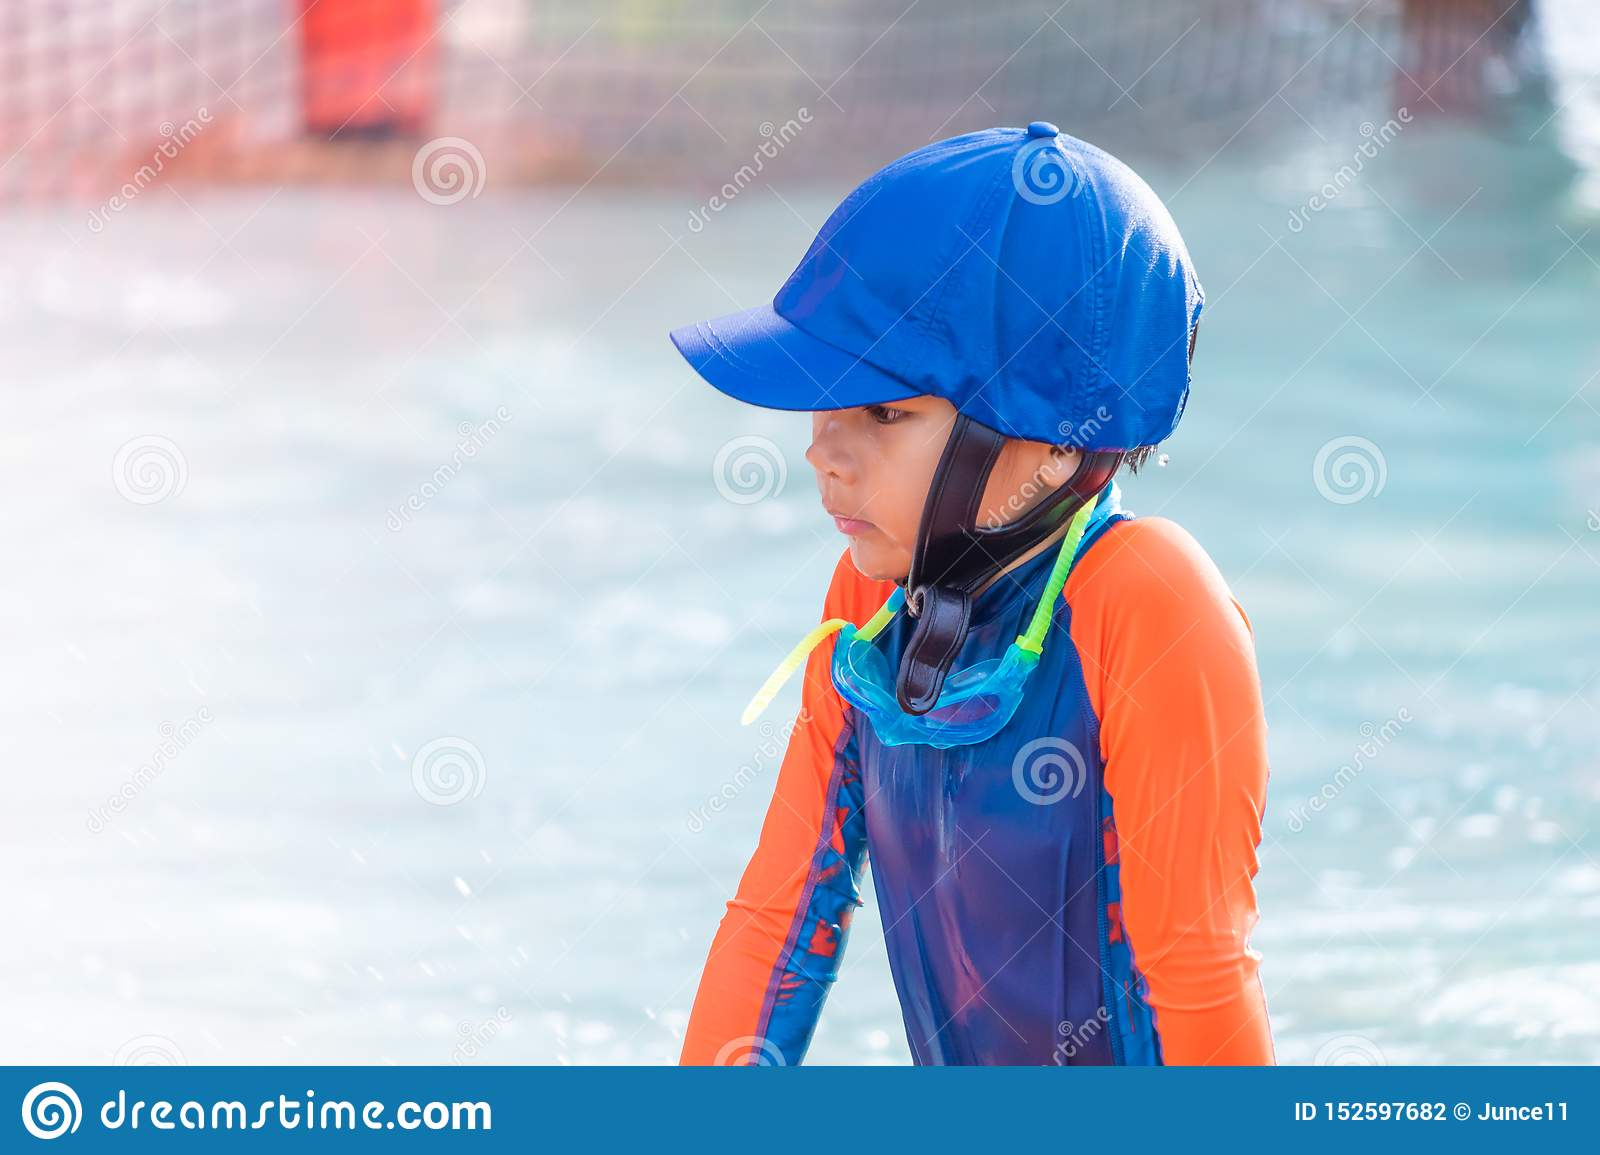 Boy with blue hat and orange suit is playing in swimming pool